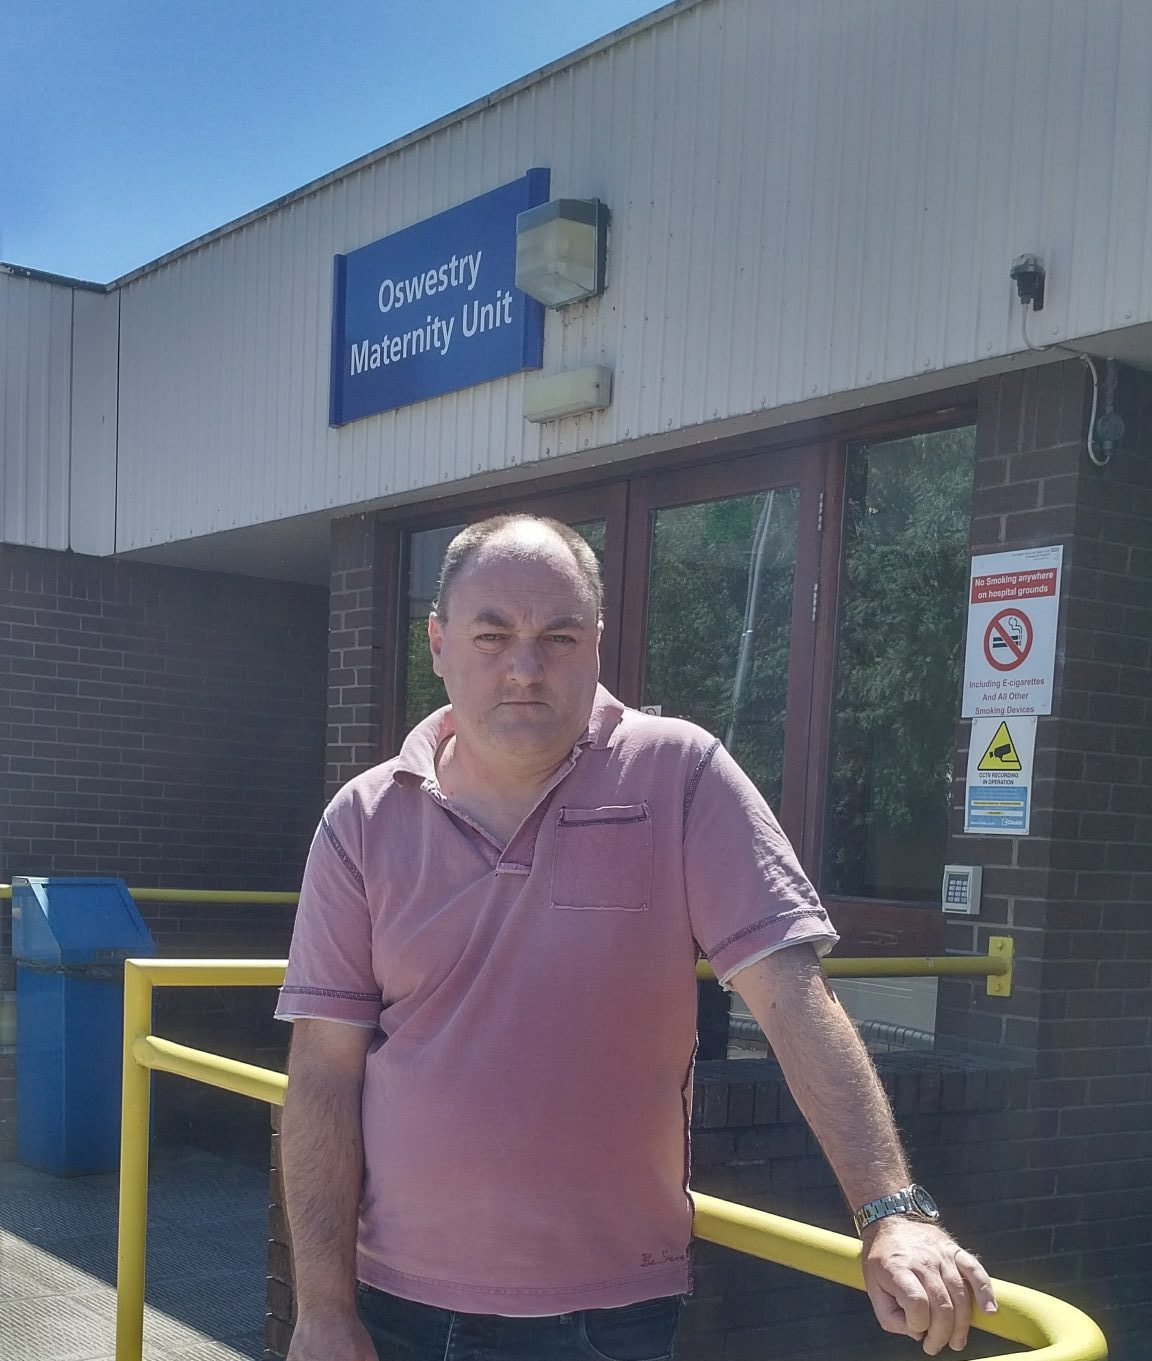 David Walker outside Oswetry Maternity Unit